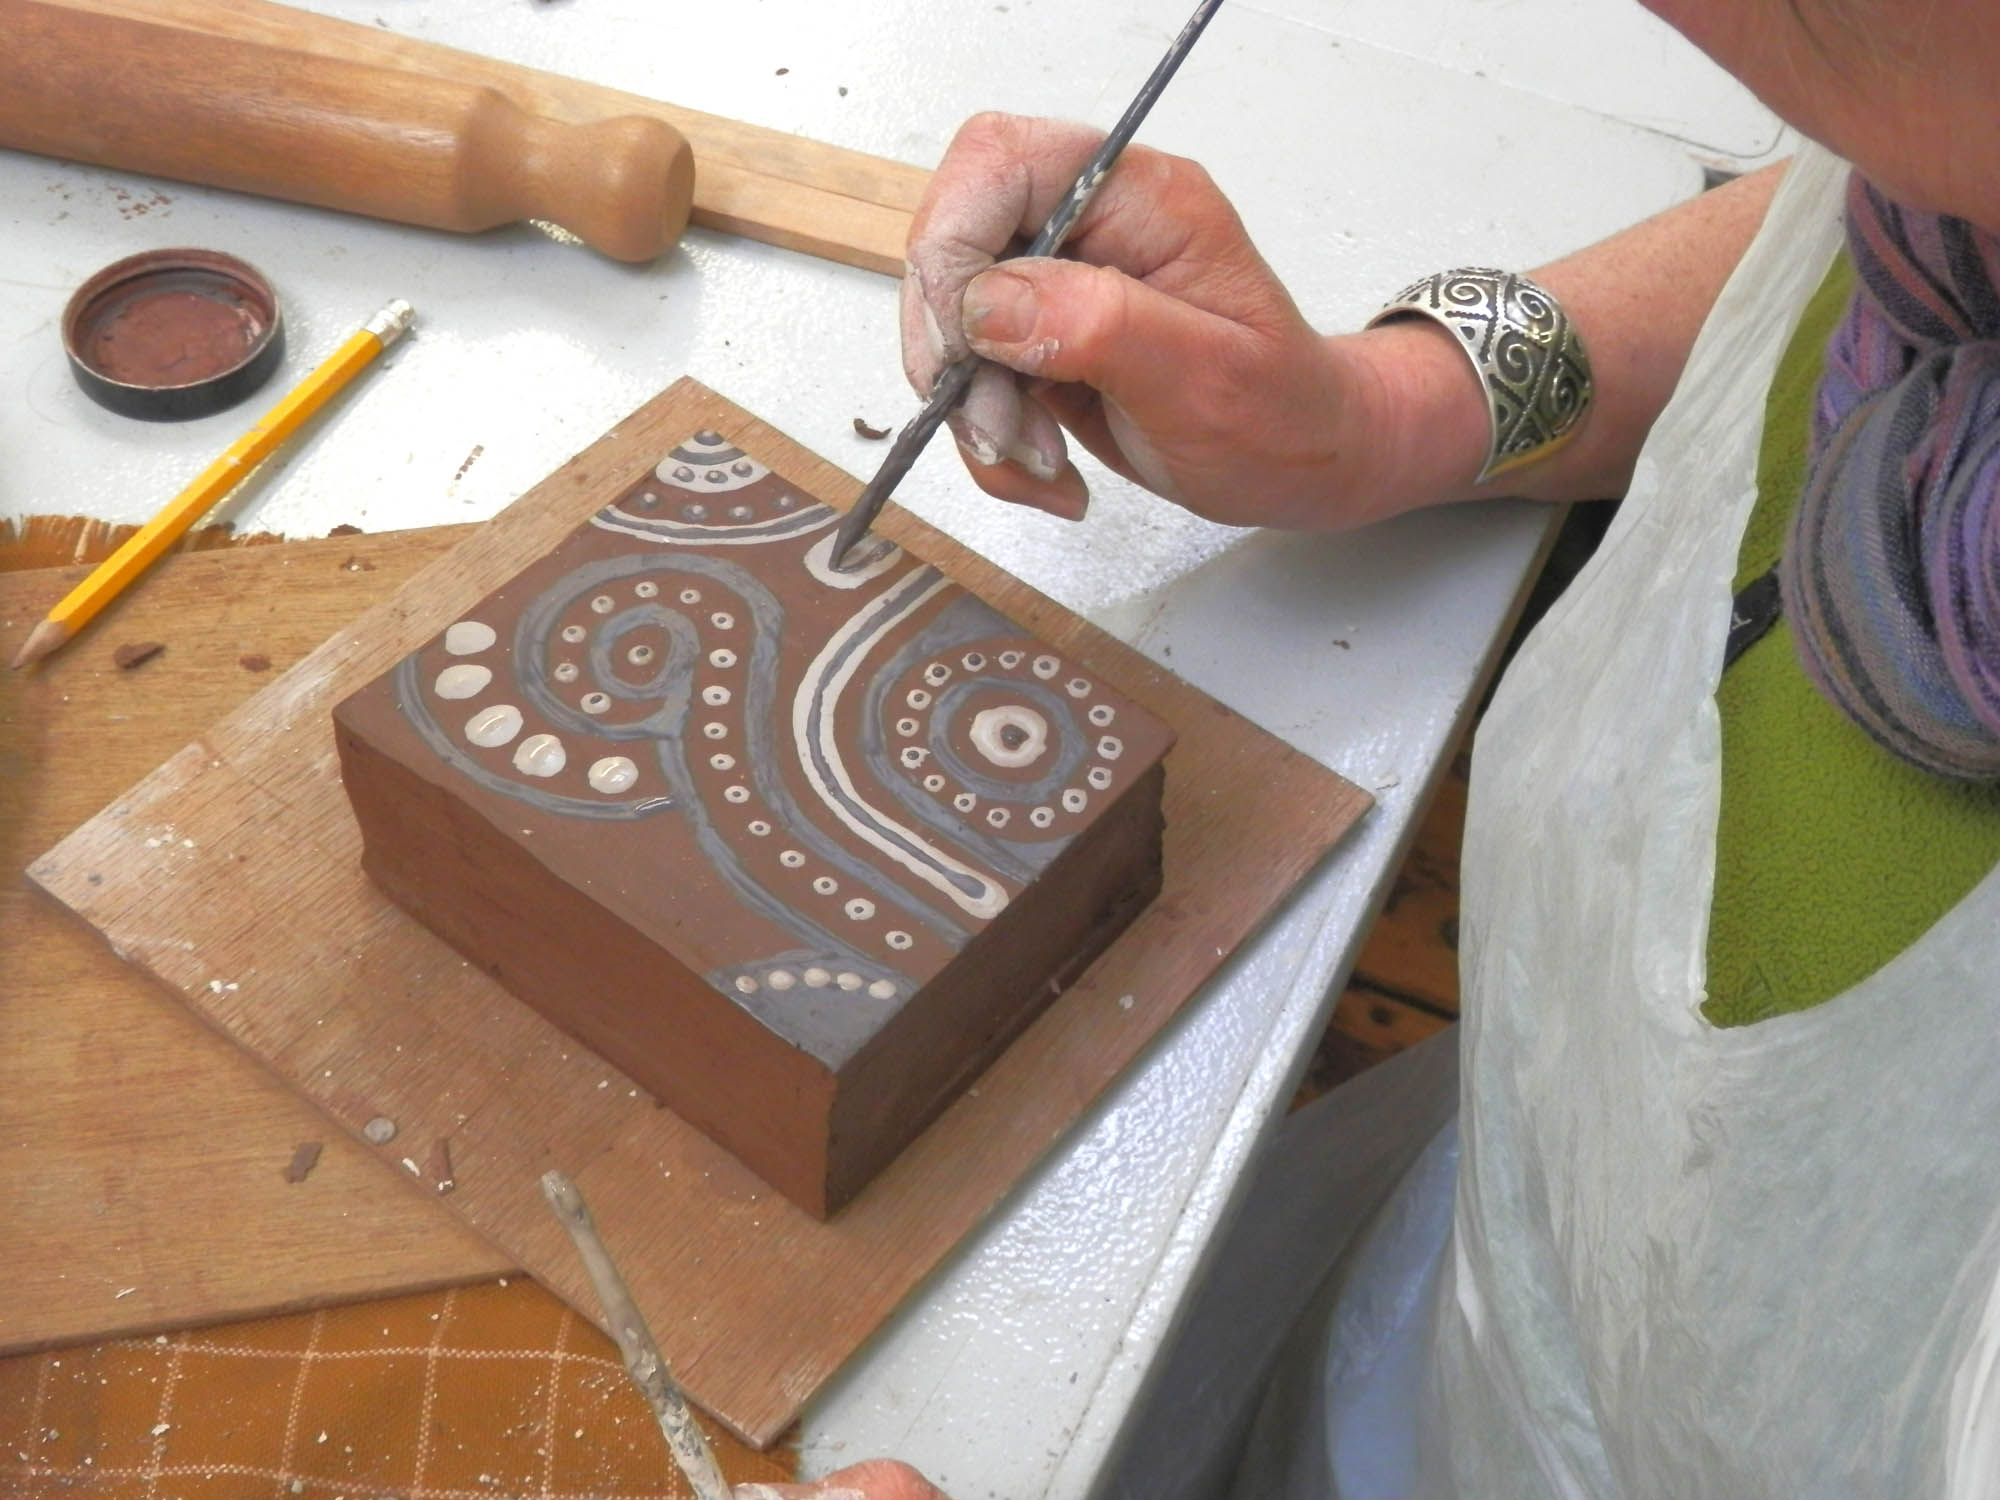 Seven Limes Pottery Manchester   Pottery classes & courses